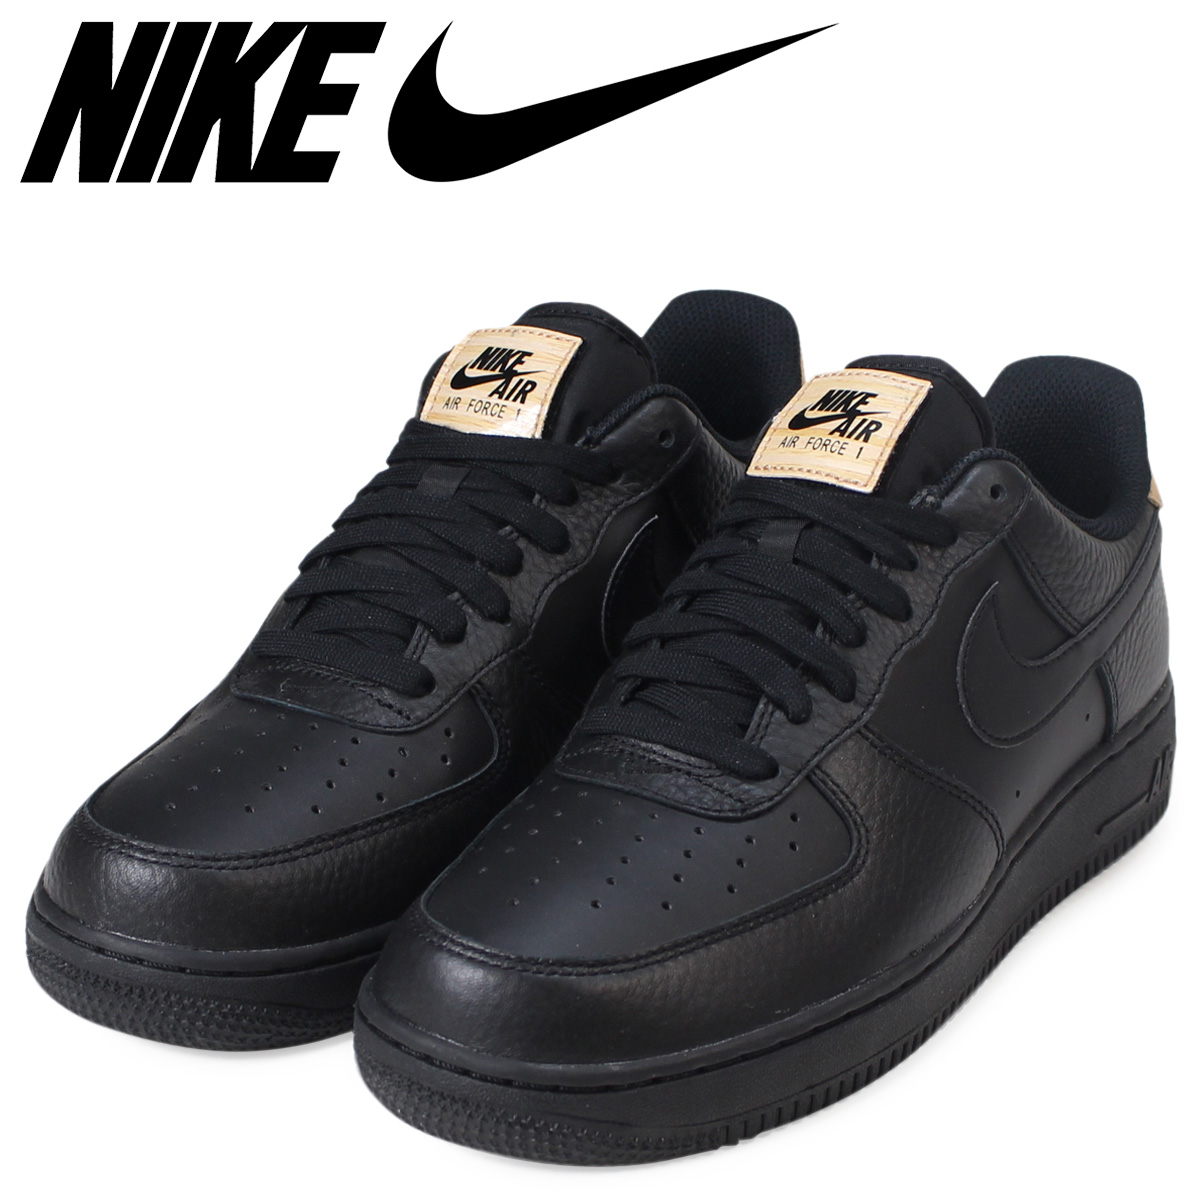 Nike NIKE air force 1 sneakers AIR FORCE 1 LOW LEATHER TONGUE 718,152 016 men's black